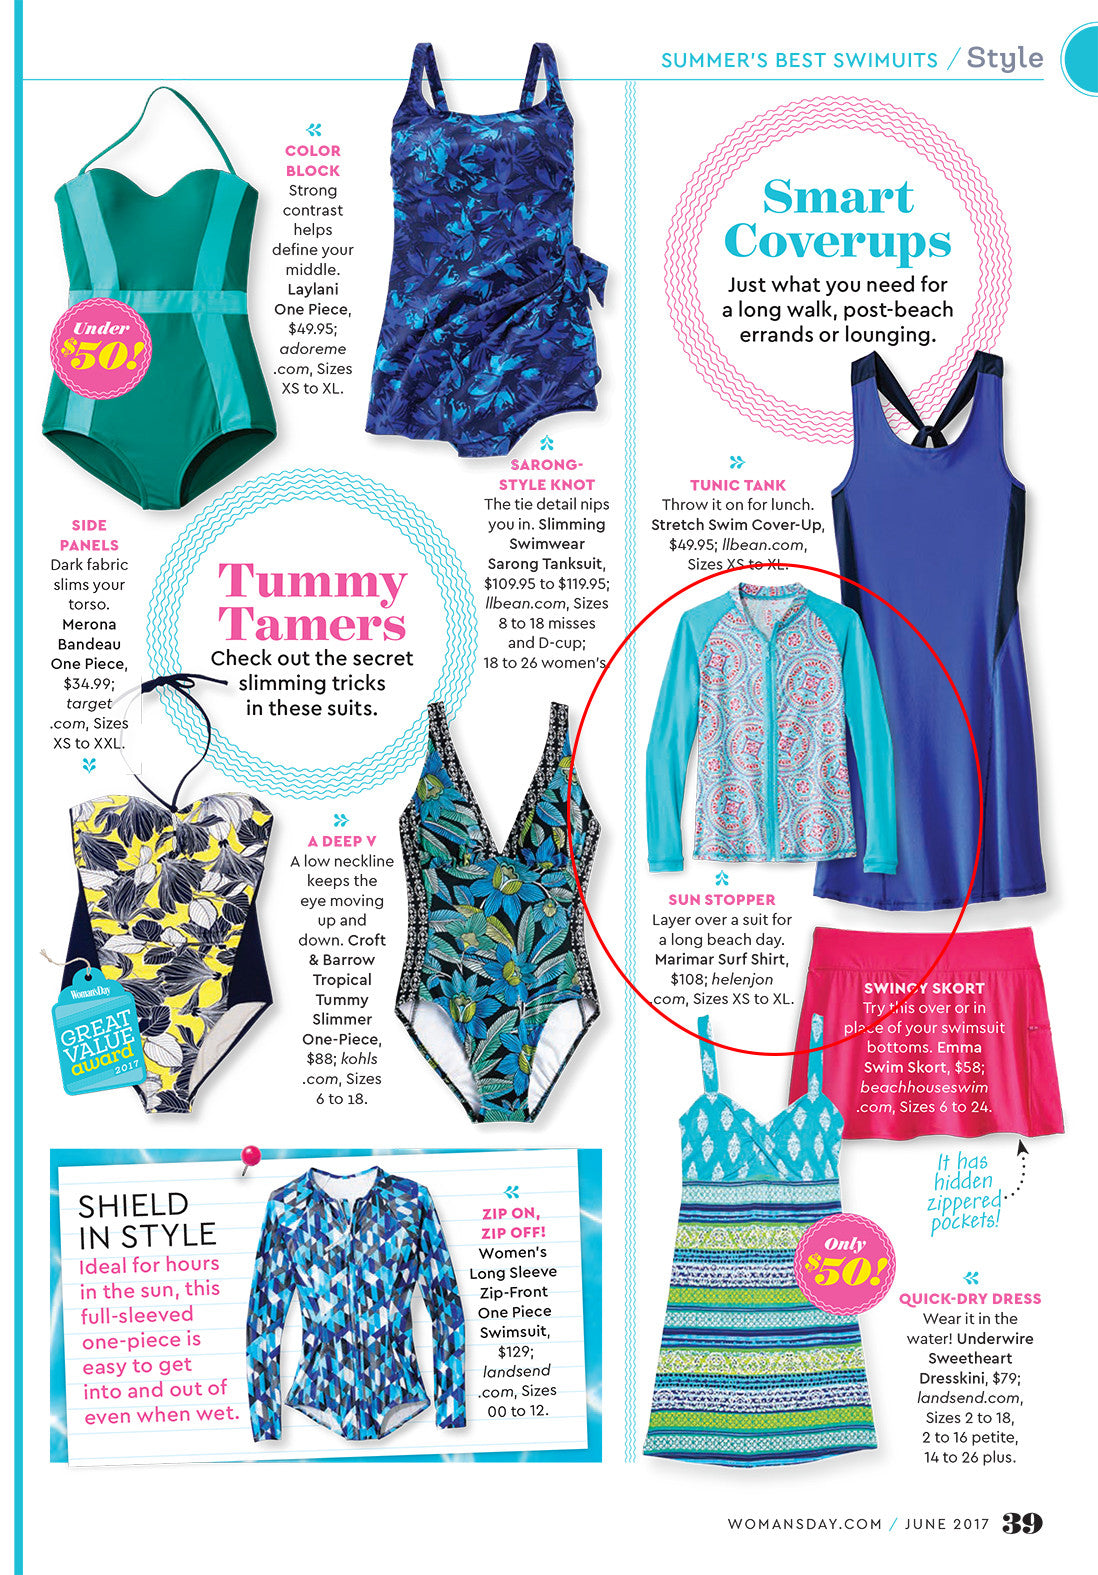 Woman's Day Swim feature